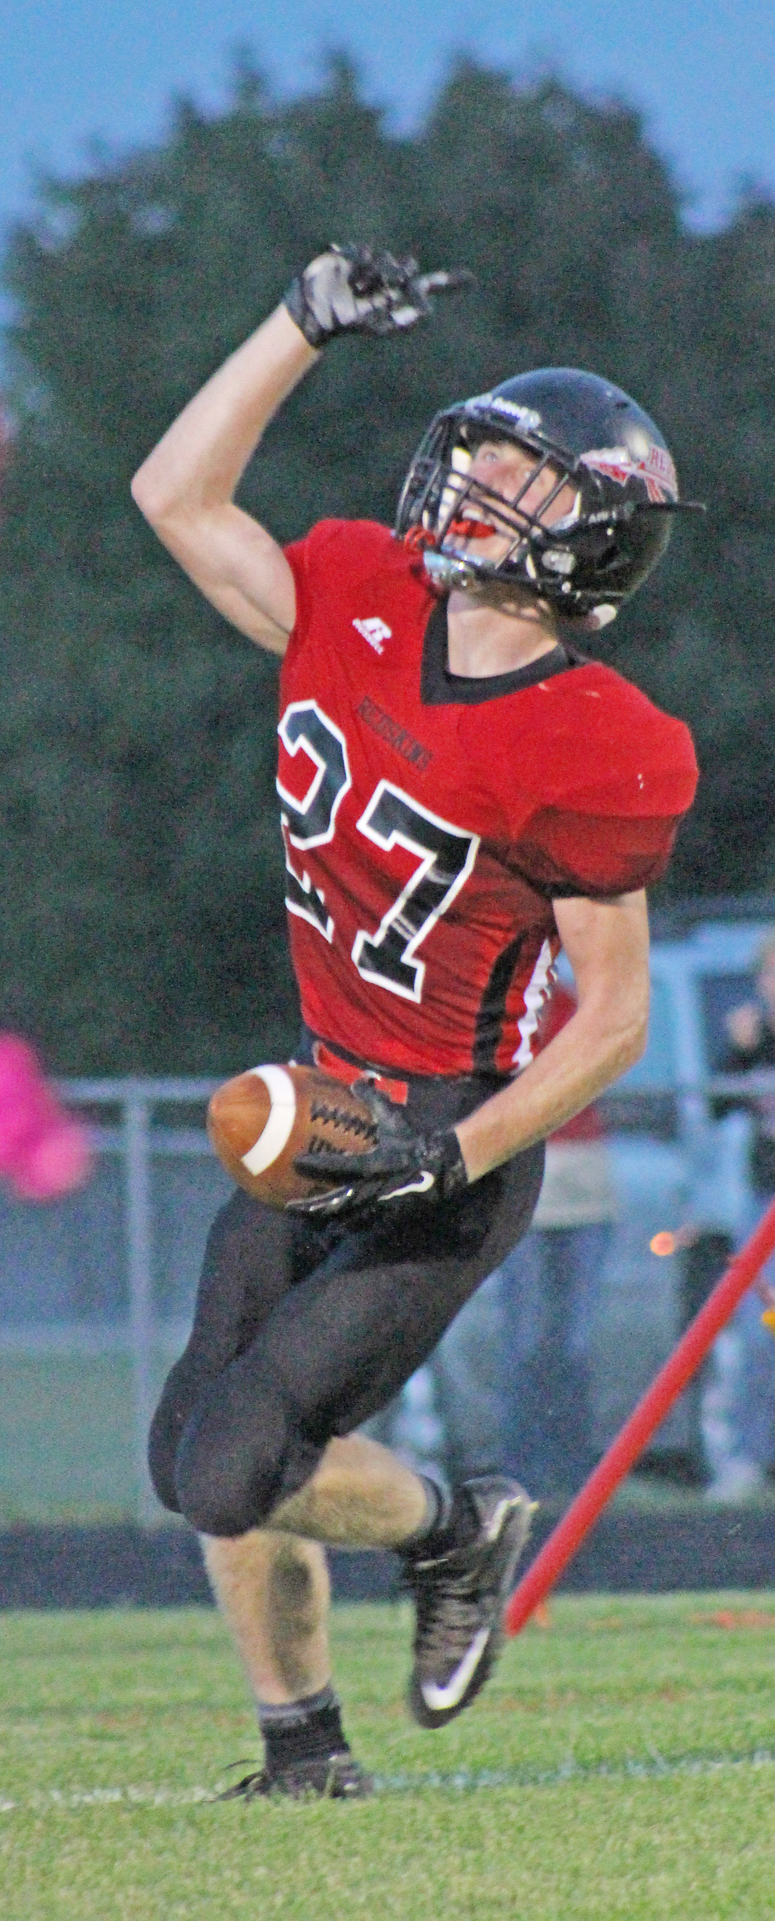 Photo by RR Best SOV  Redskin Jake Eaton celebrates following this touchdown against Warrensburg-Latham last Friday in Sullivan.